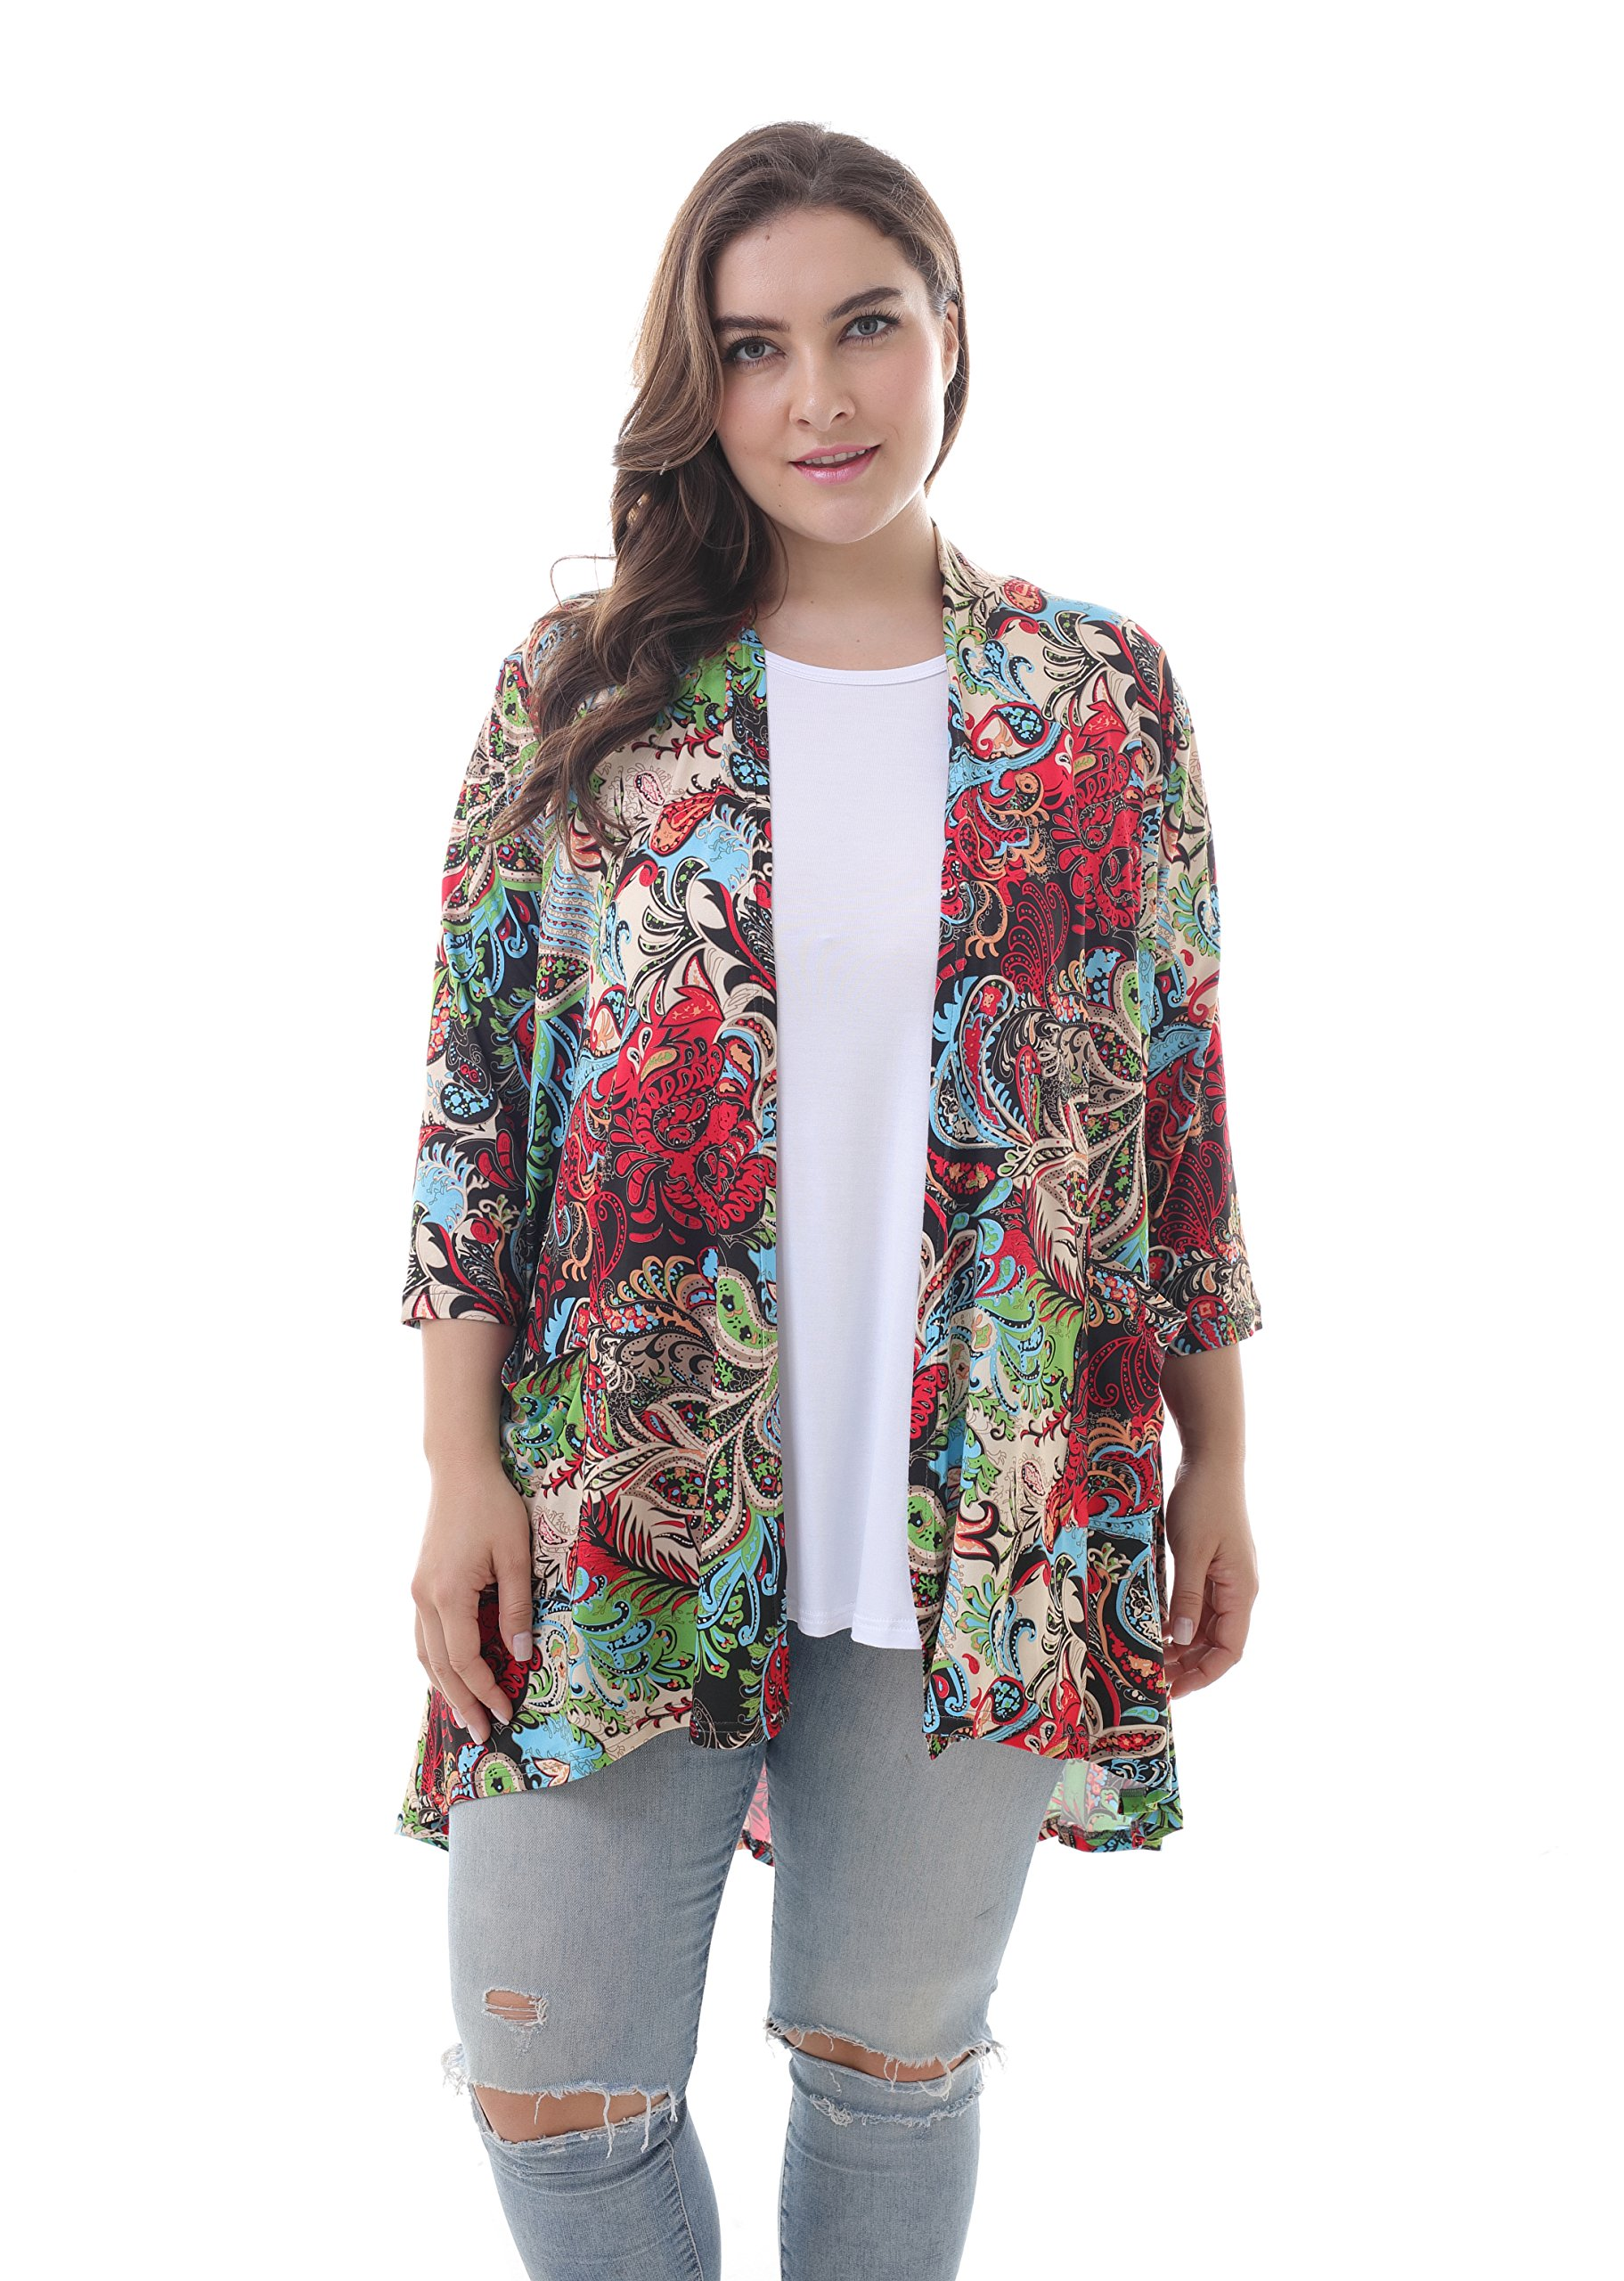 ZERDOCEAN Women's Plus Size 3/4 Sleeve Lightweight Soft Printed Drape Cardigan with Pockets 103 3X